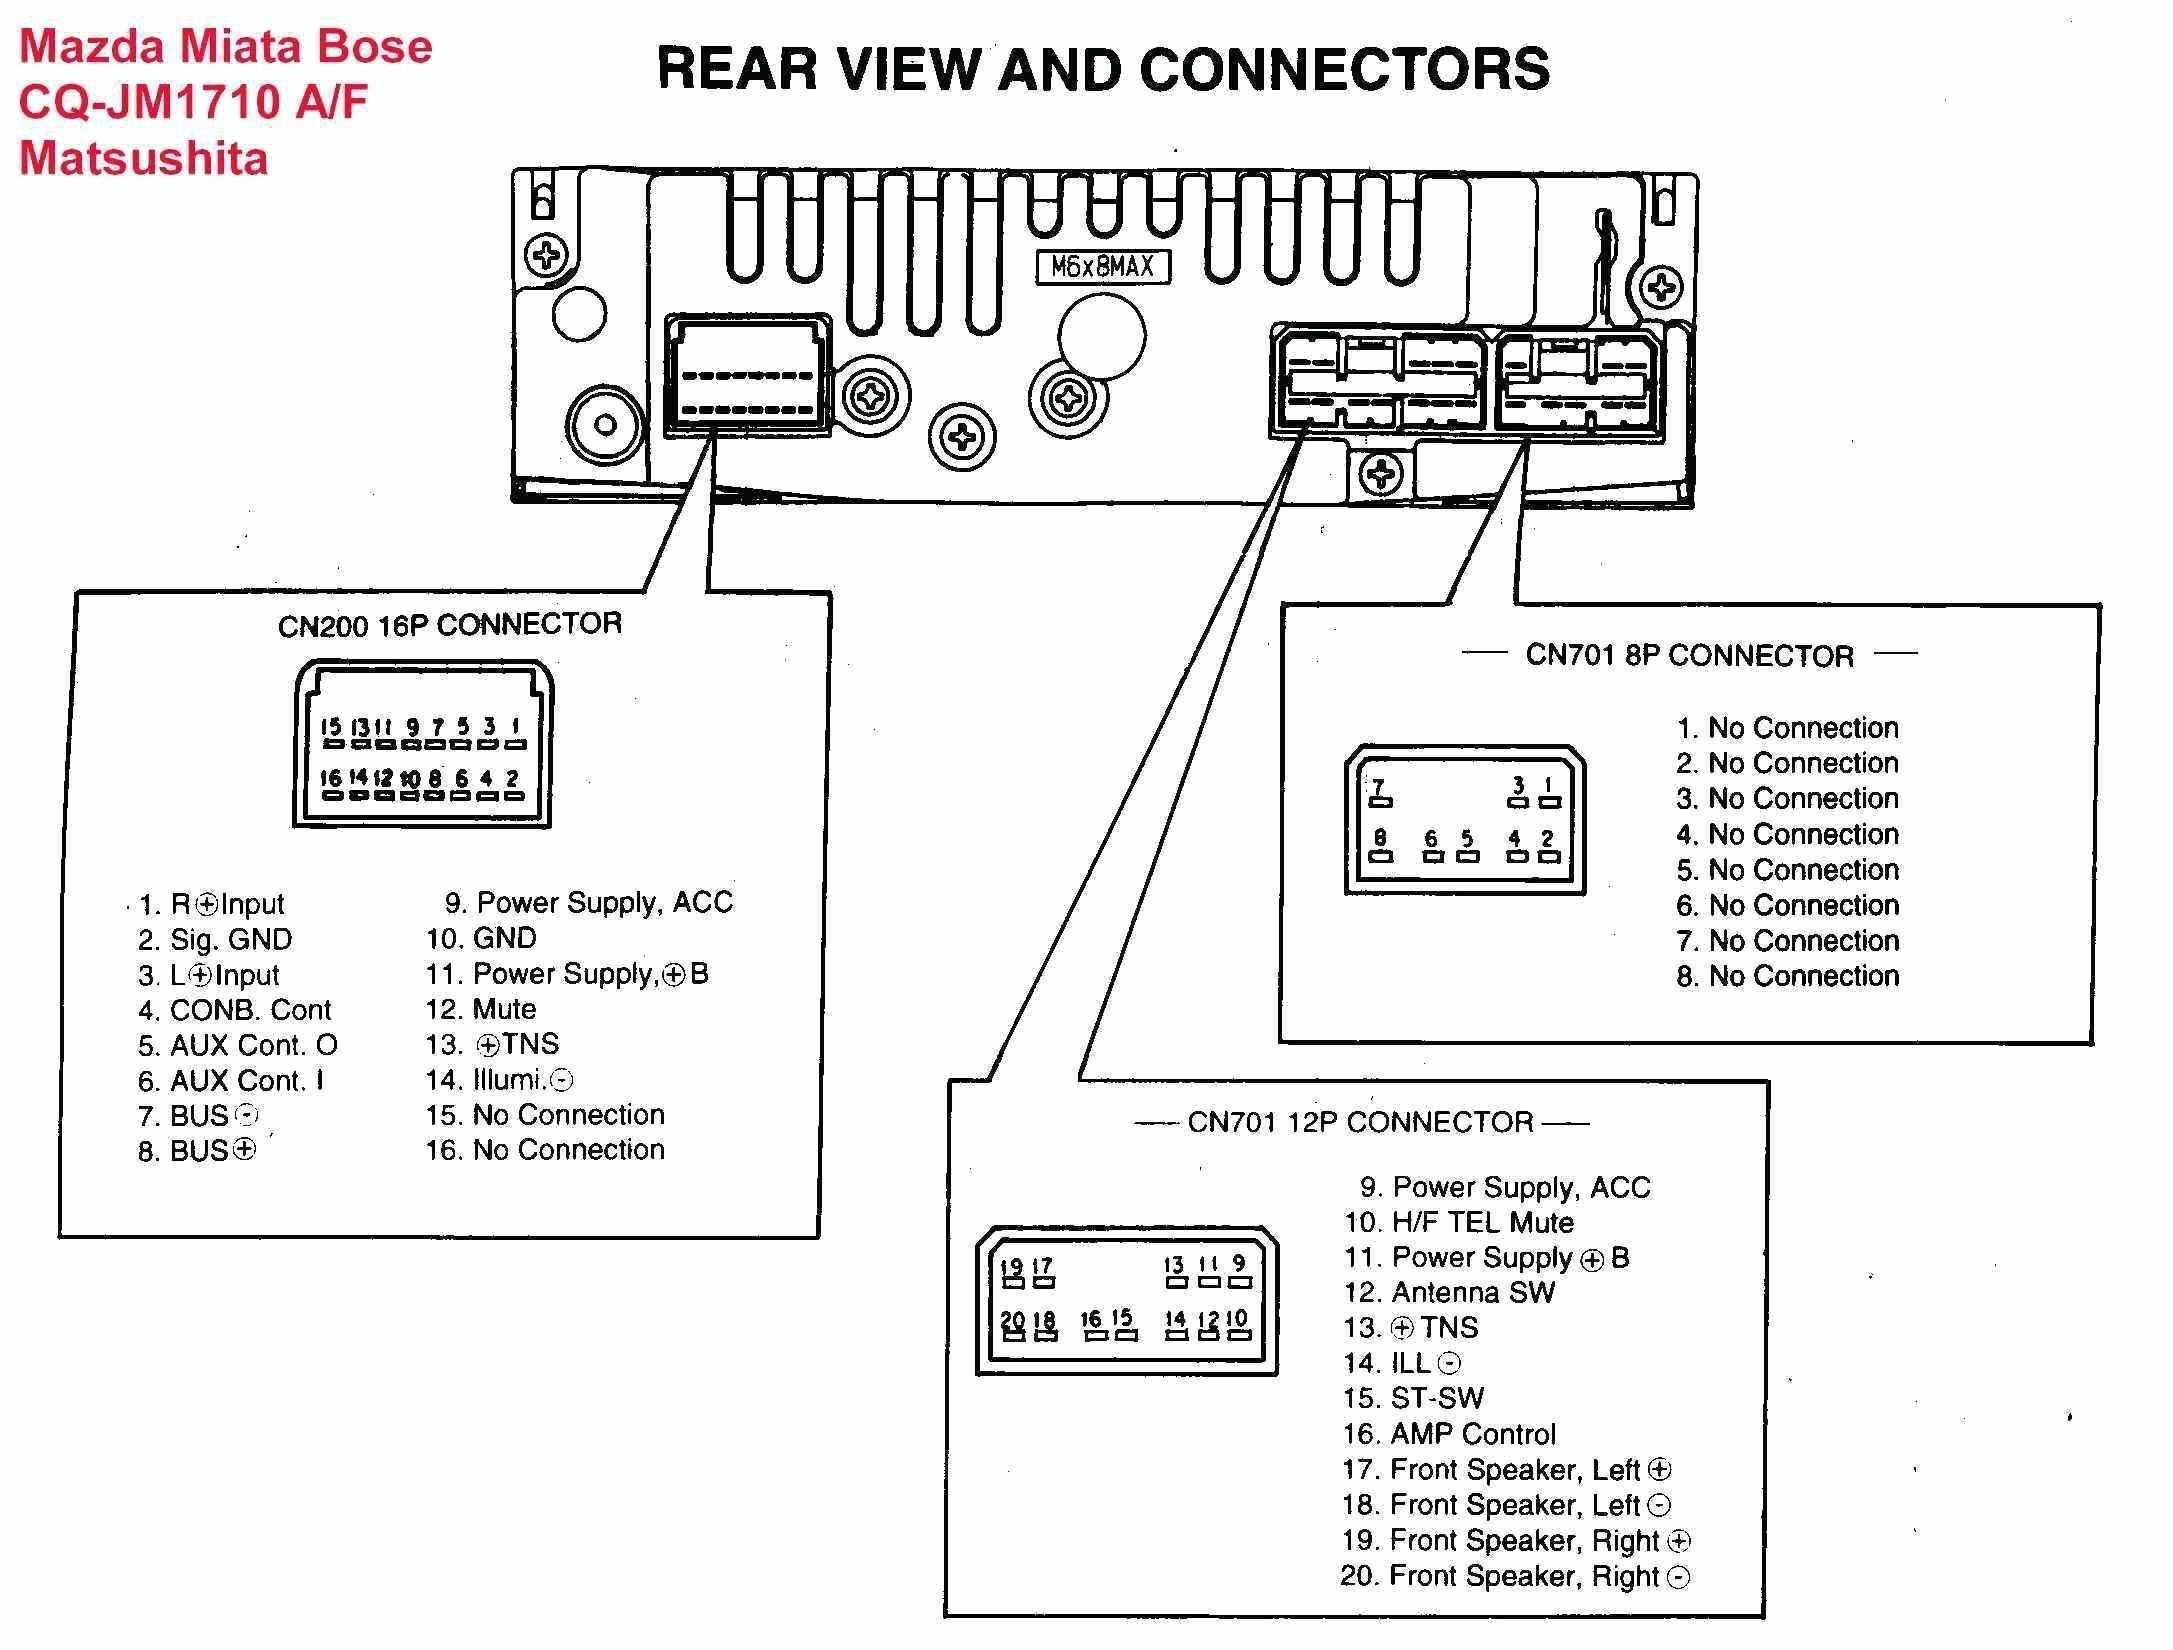 Pioneer Head Unit Wiring Diagram In 2020 Sony Car Stereo Car Stereo Systems Car Stereo